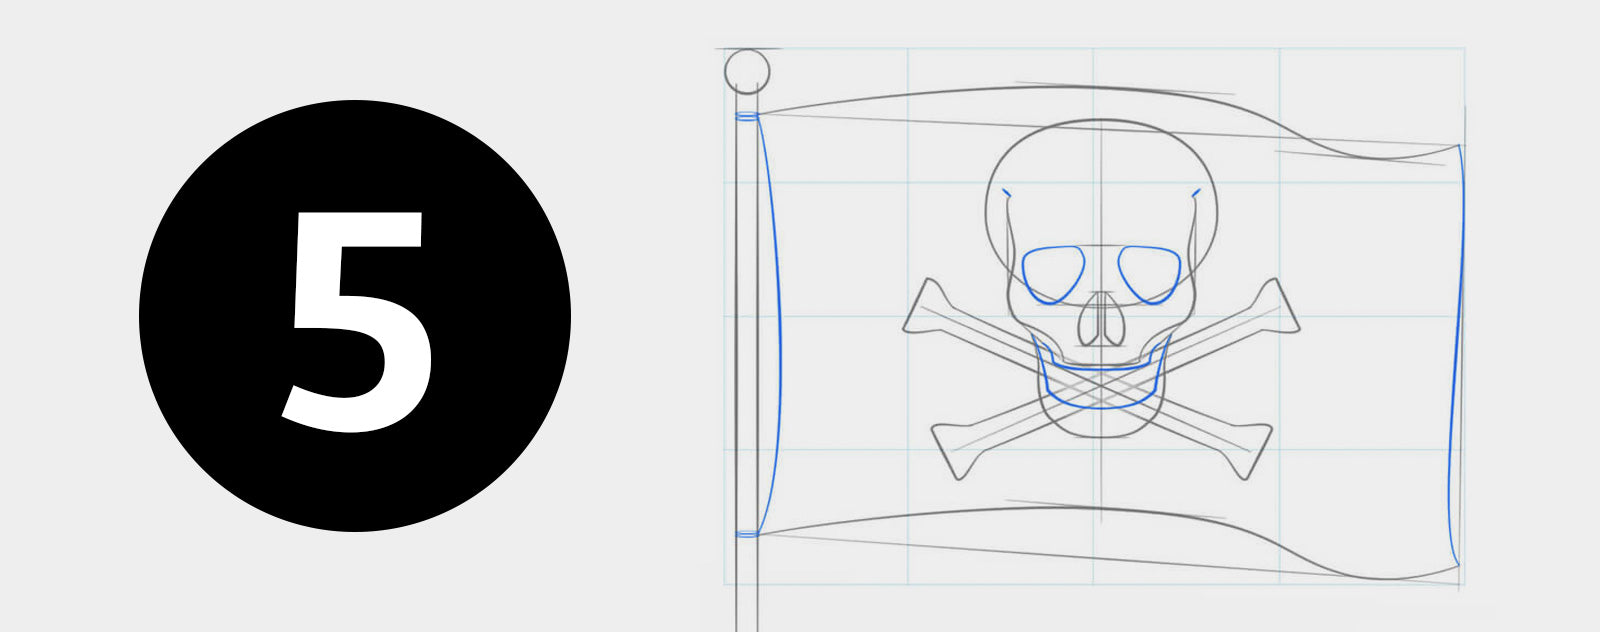 Dessiner facilement un pirate